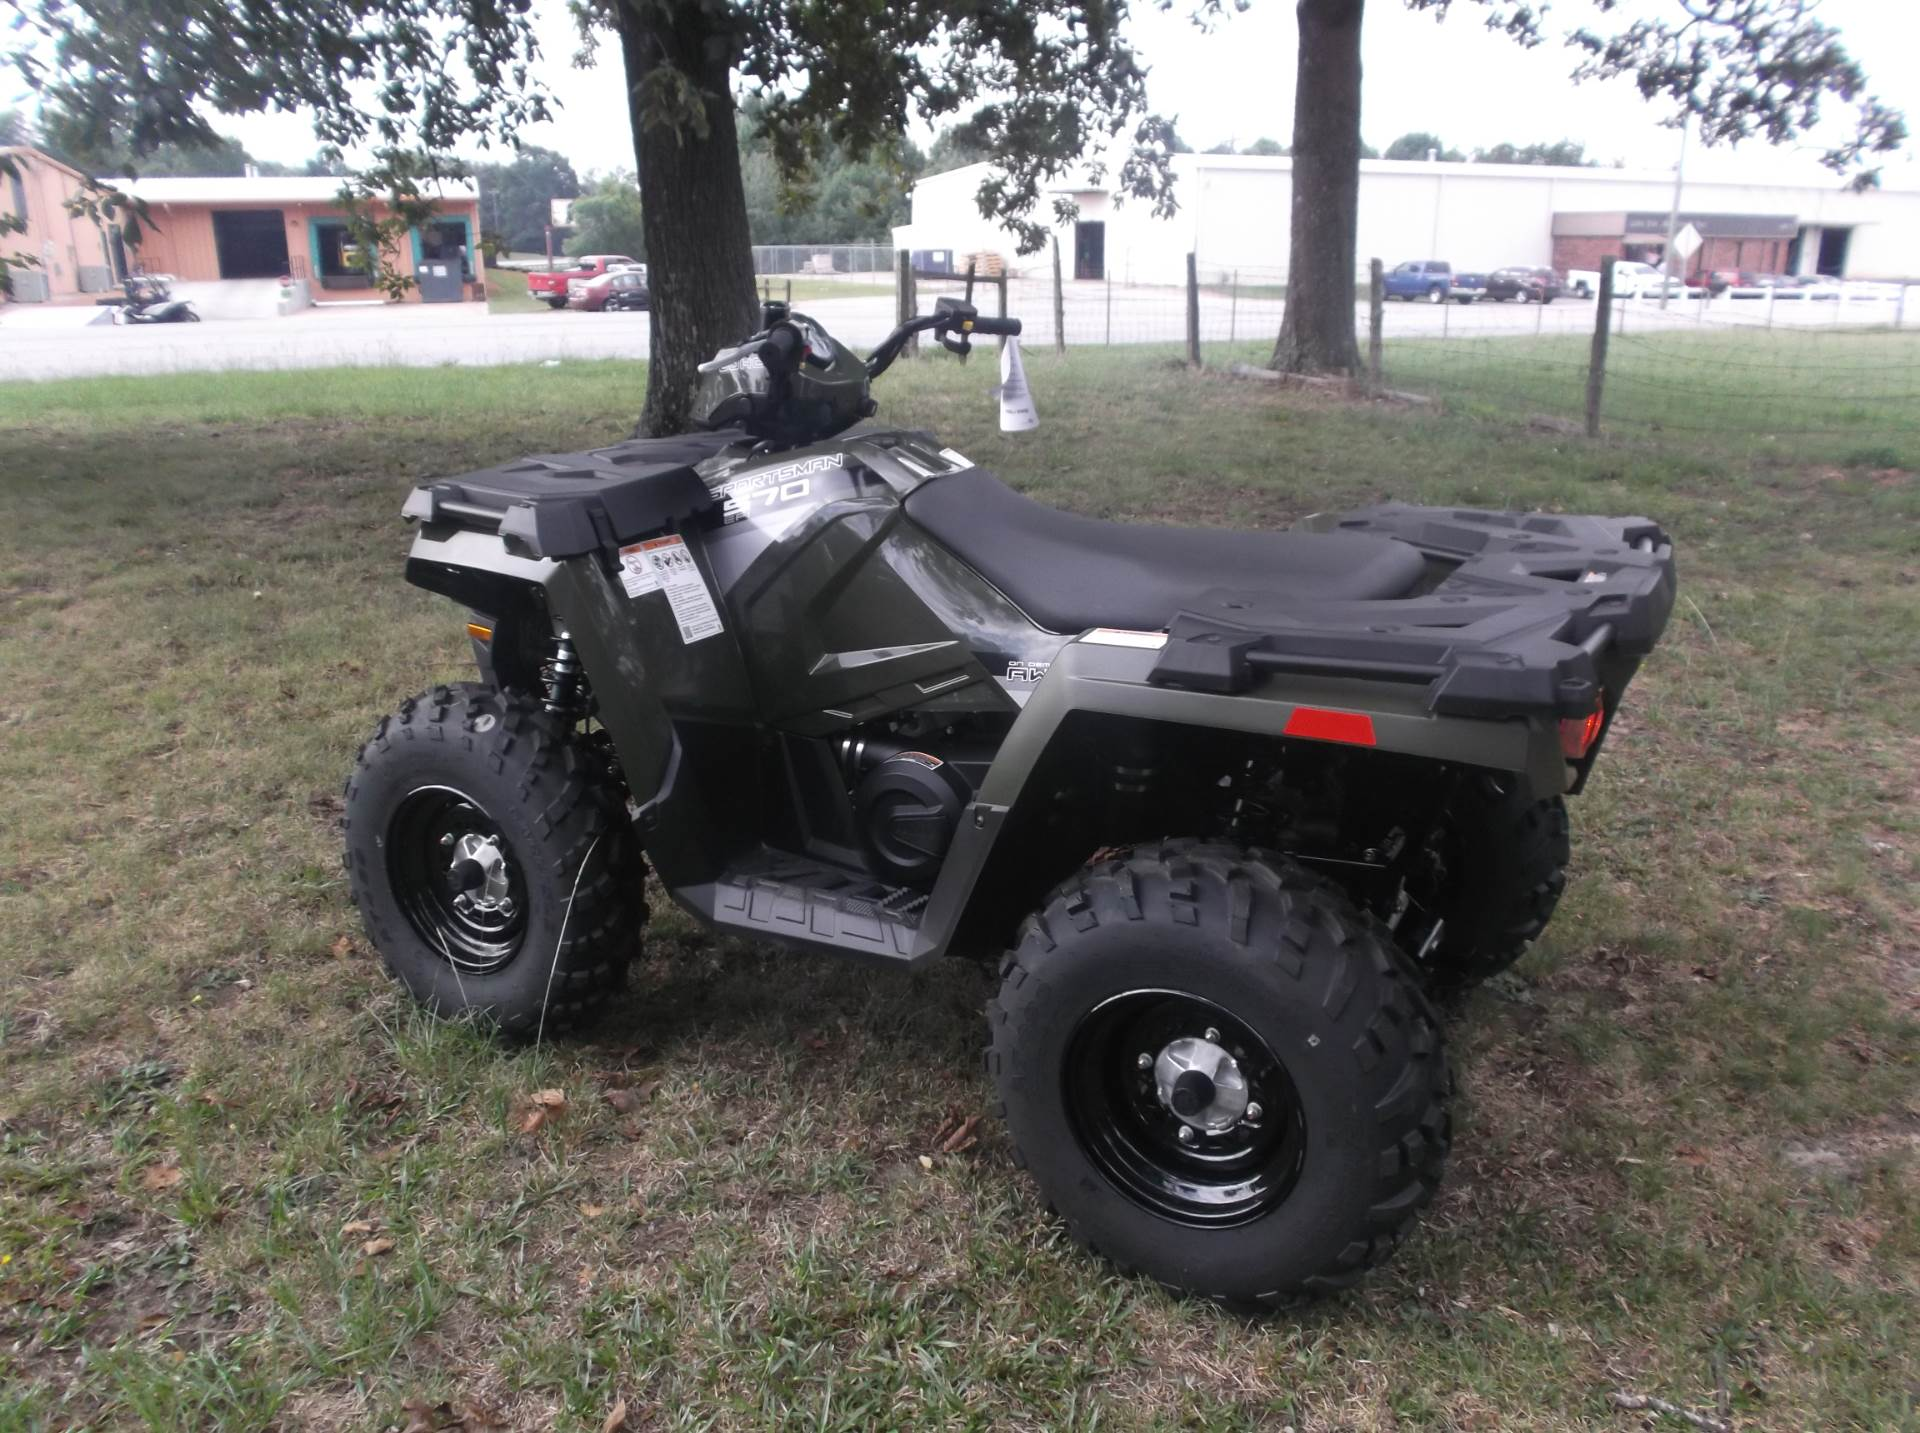 2019 Polaris Sportsman 570 in Greer, South Carolina - Photo 10